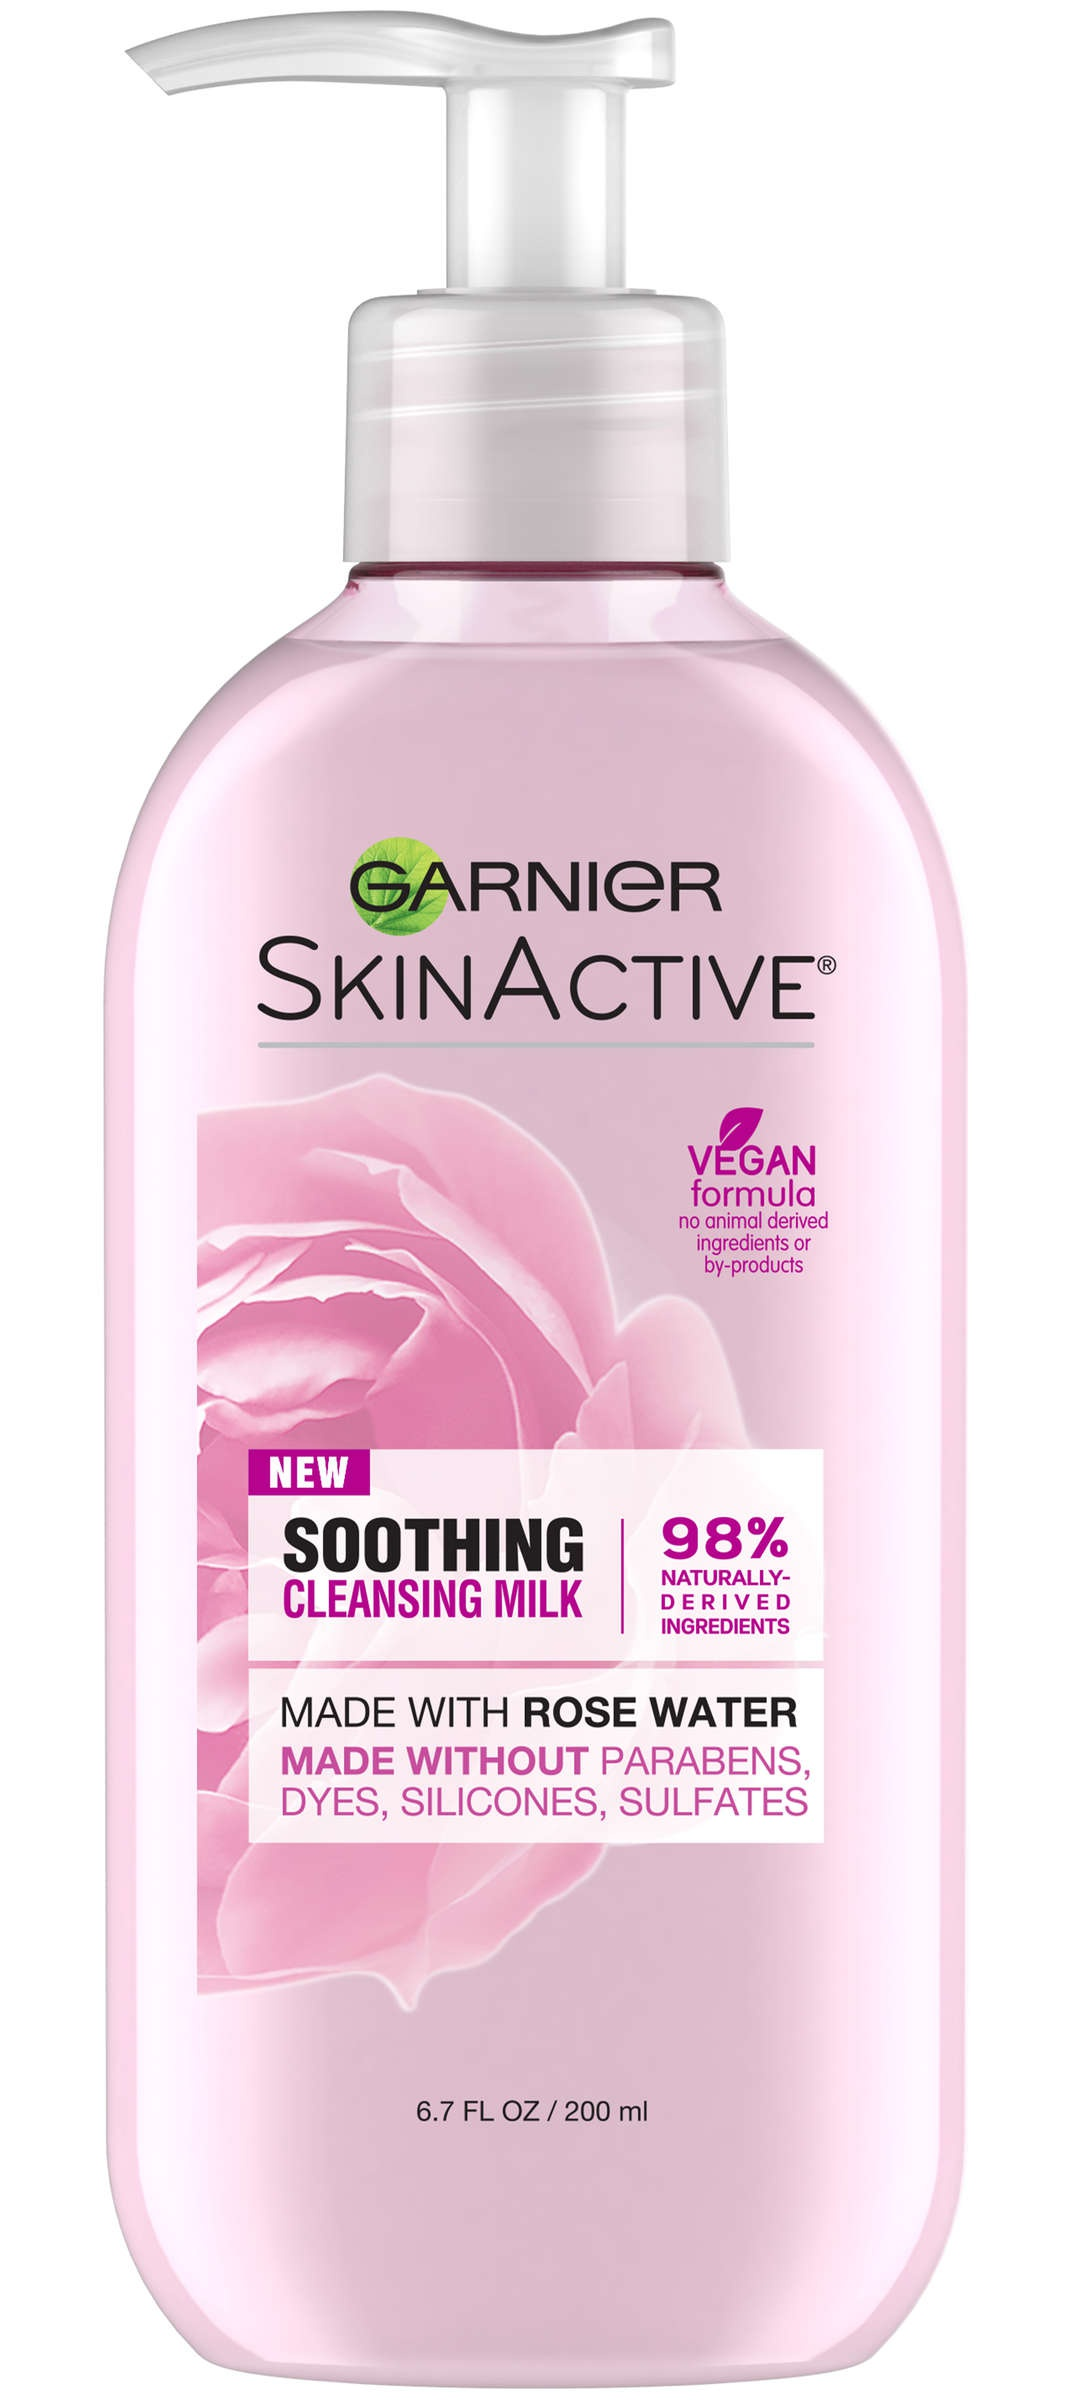 Garnier Skinactive Soothing Cleansing Milk